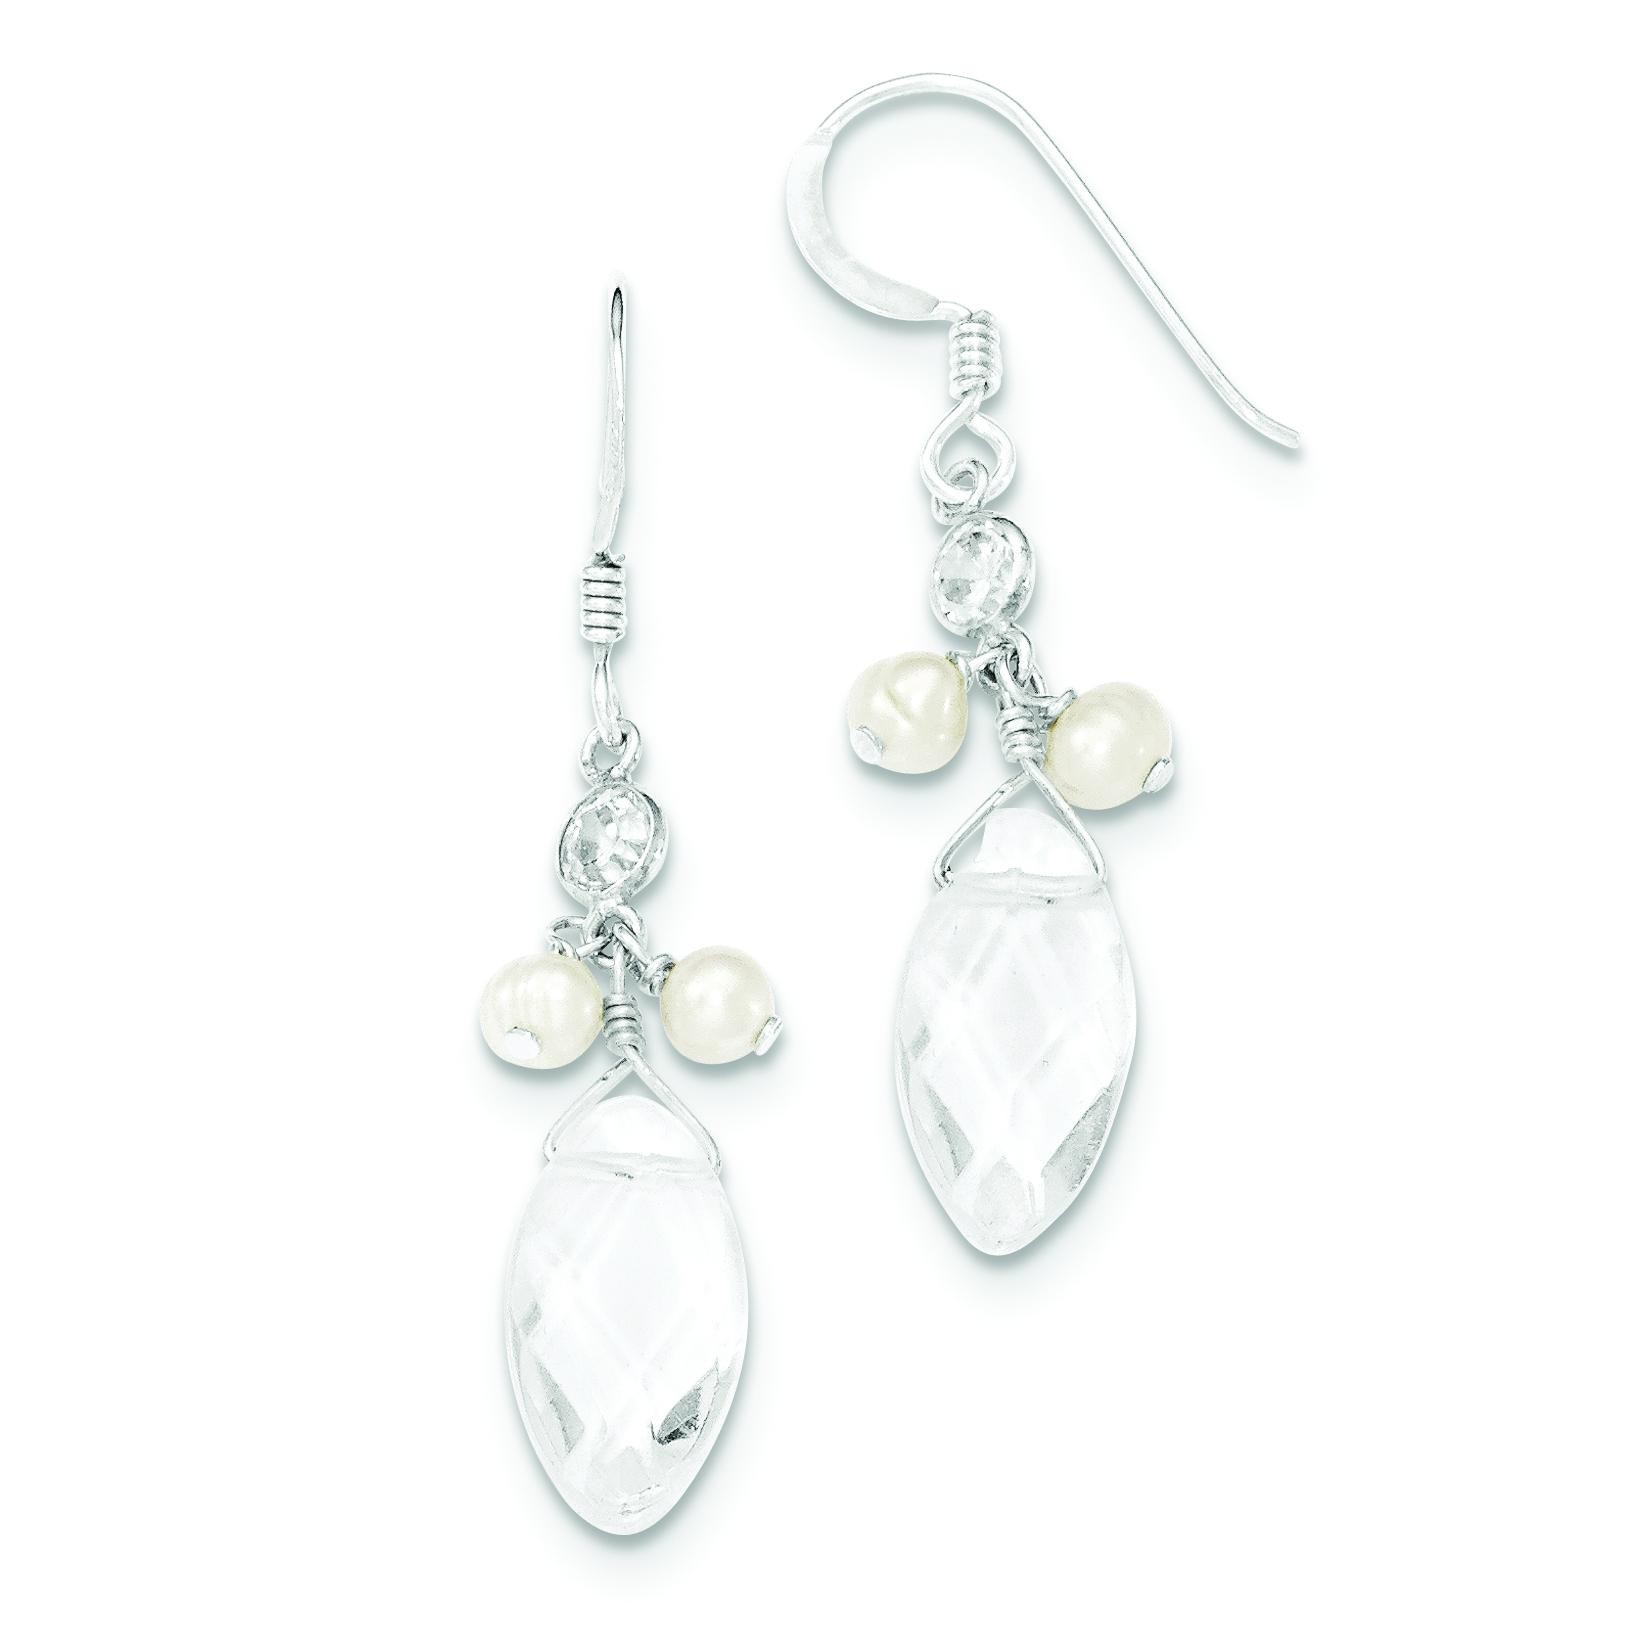 Freshwater Cultured Pearl Rock Quartz CZ Earrings in Sterling Silver